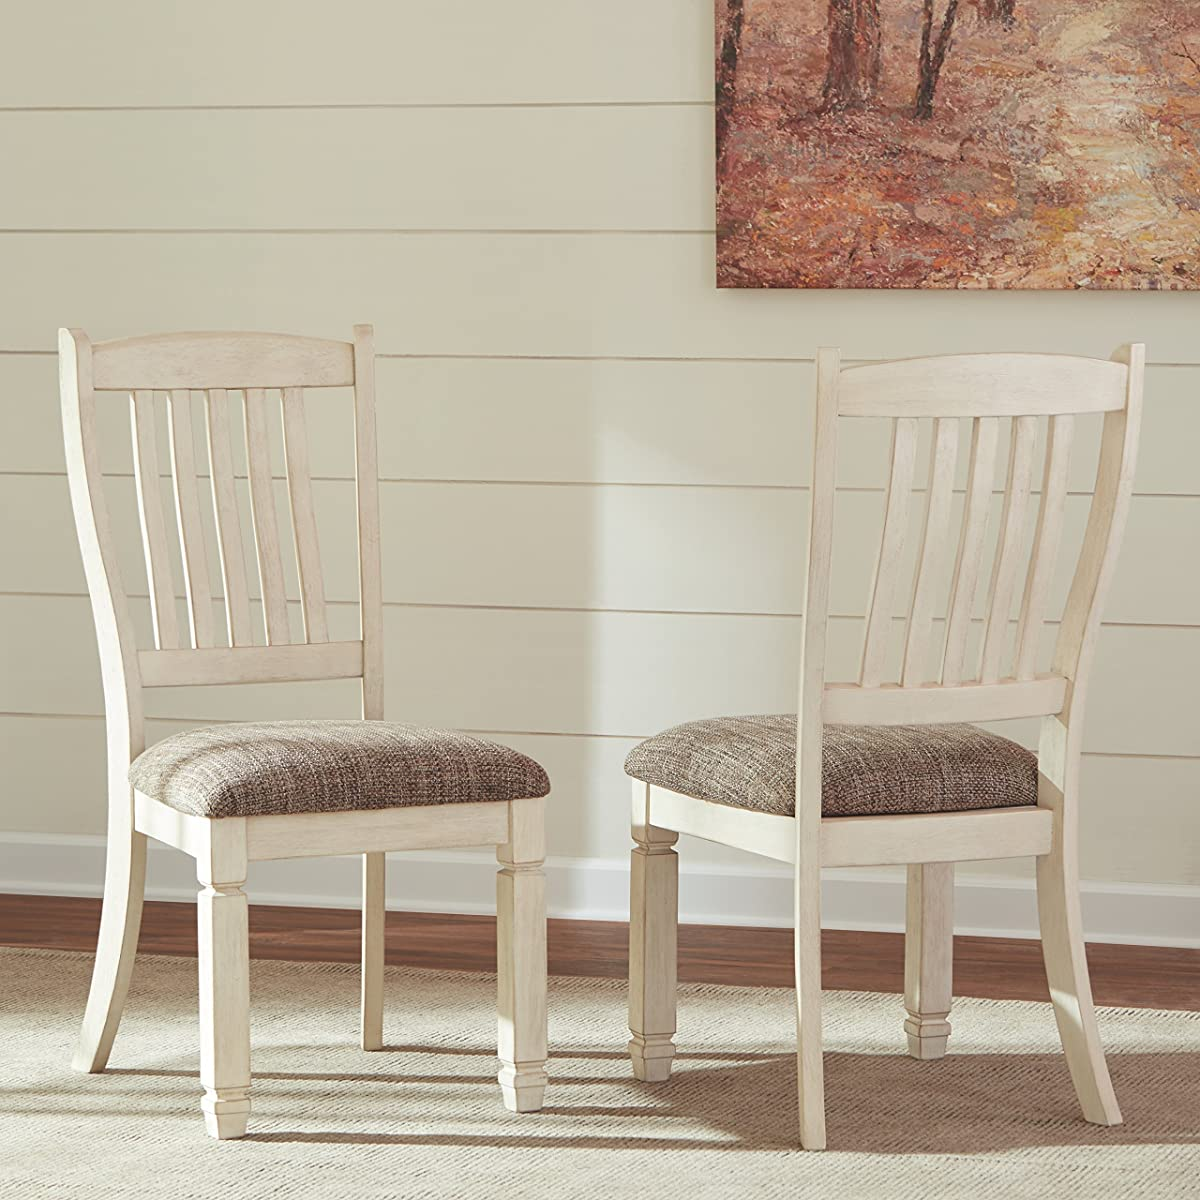 Signature Design by Ashley D647-01 Bolanburg Upholstered Set of 2 Chairs